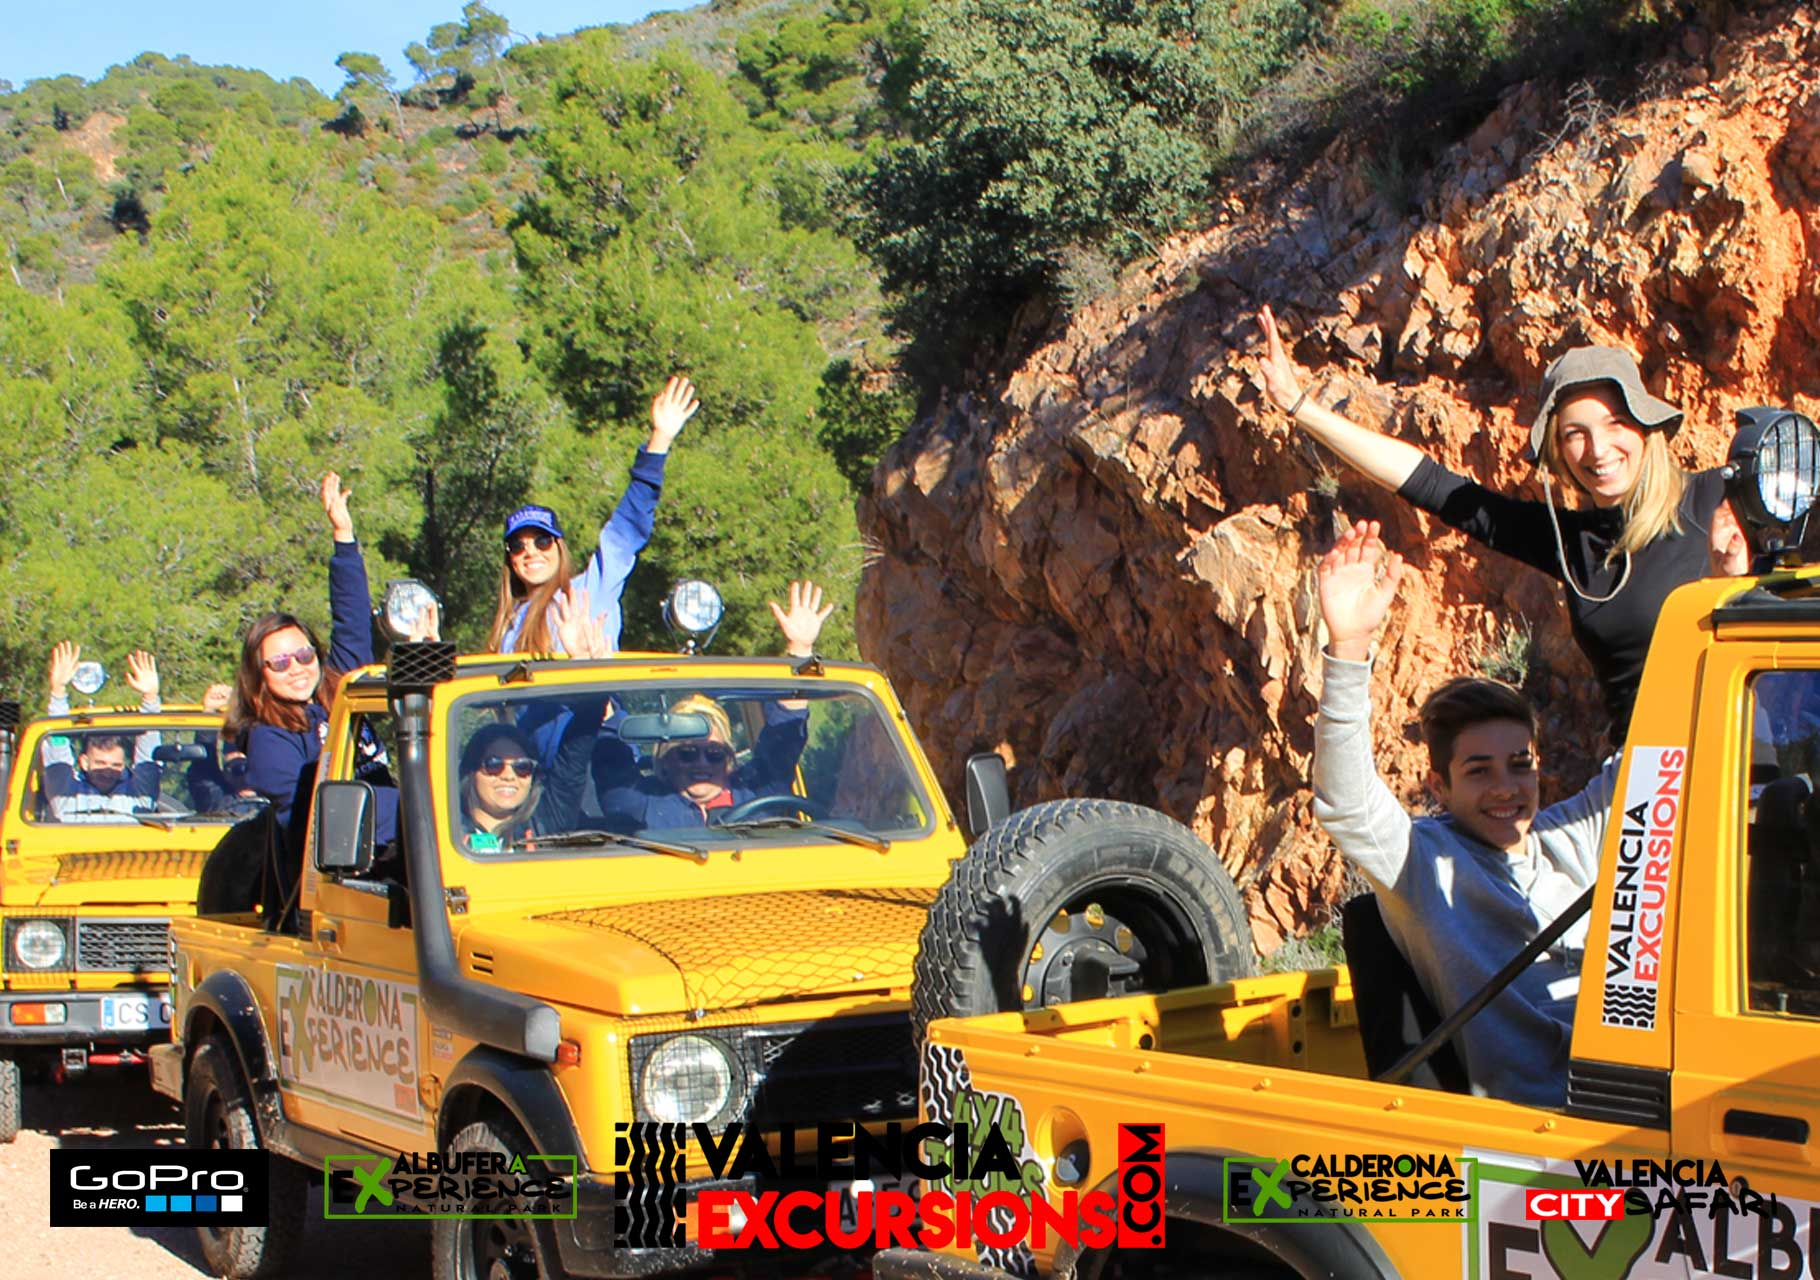 Adventure in Valencia with Calderona Experience. Offroad adventure with a self drive jeep tour organized by www.valenciaexcursions.com